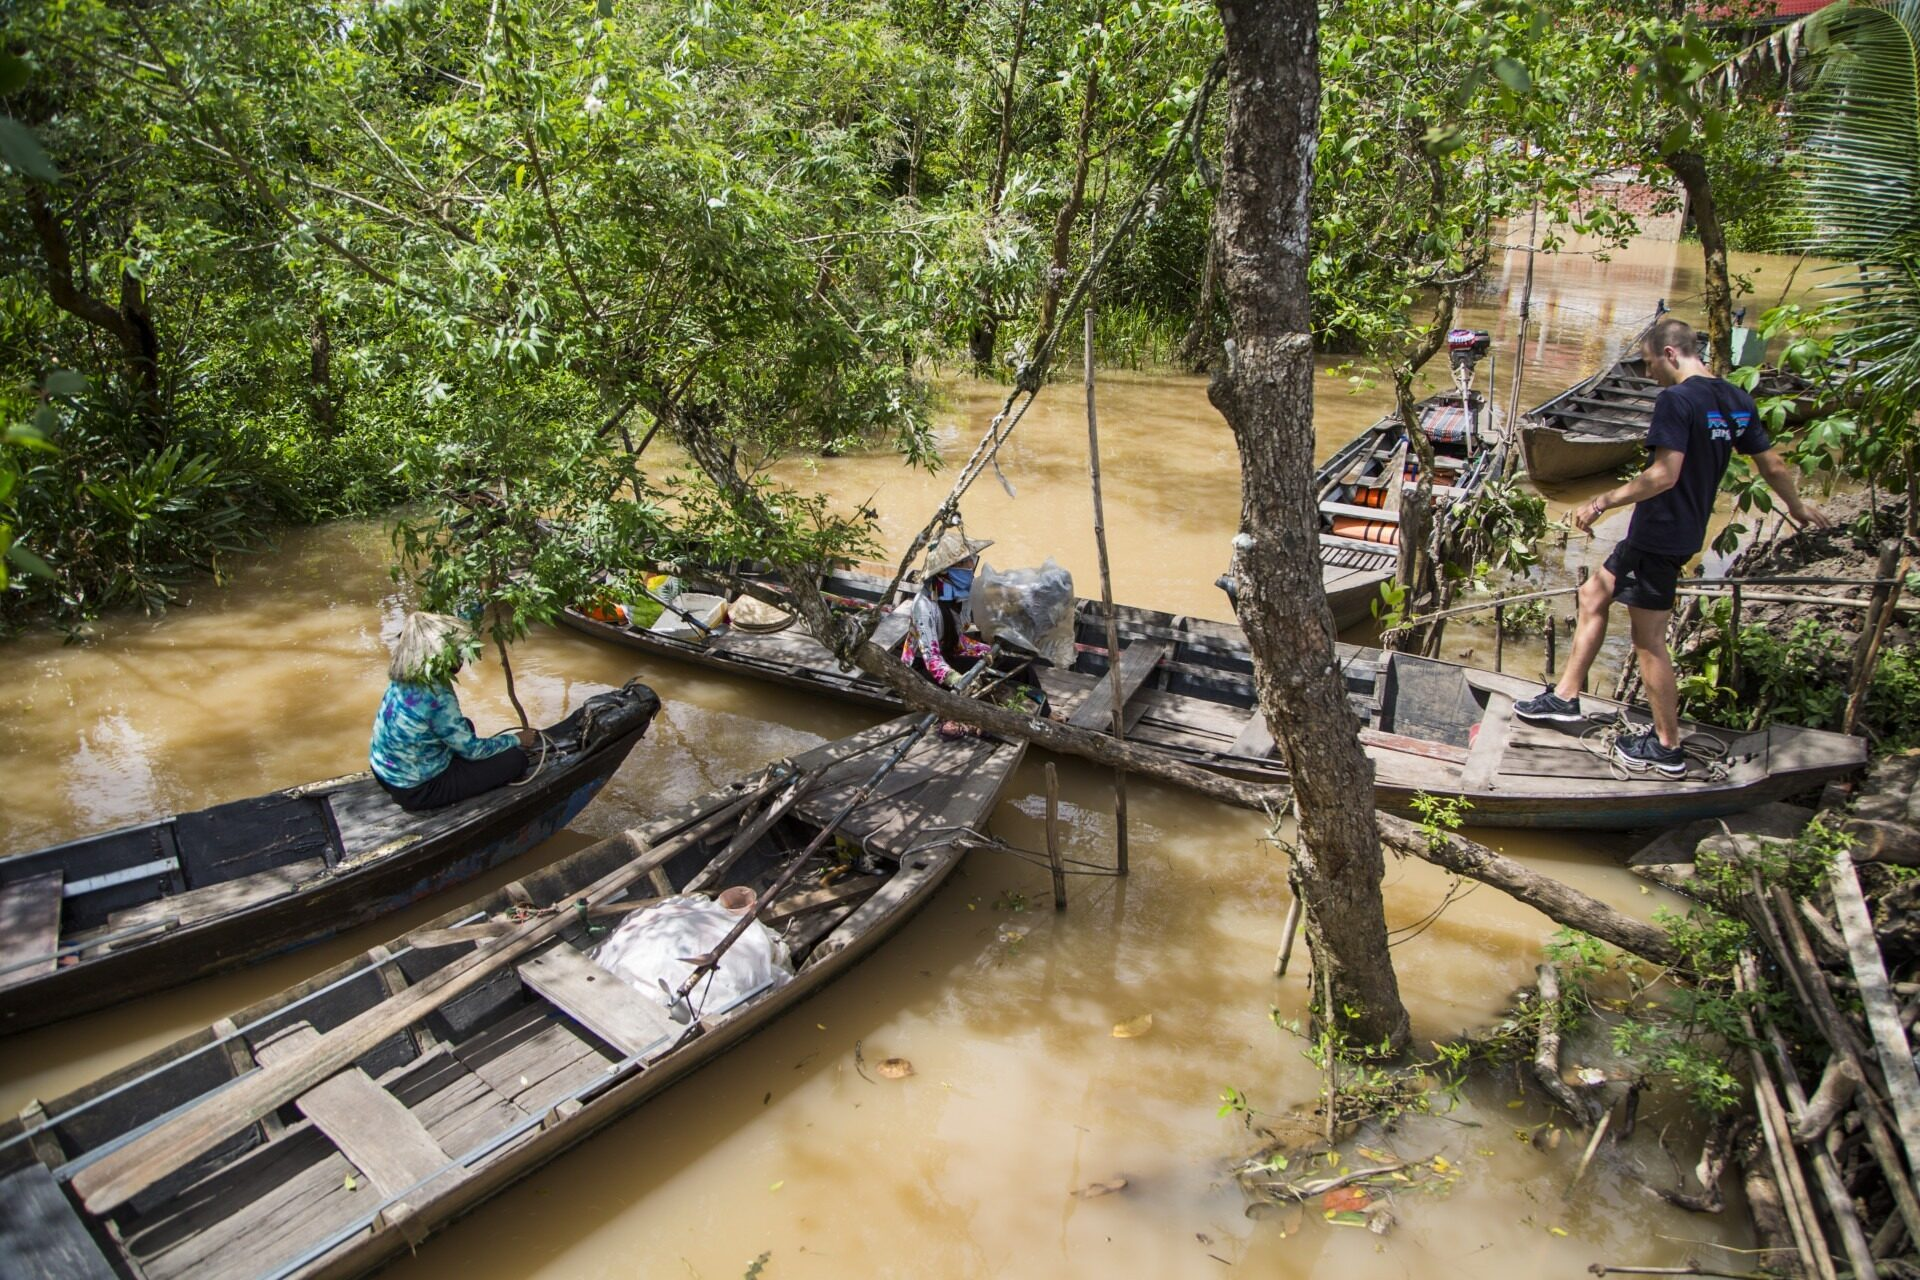 Boats in mekong river habour